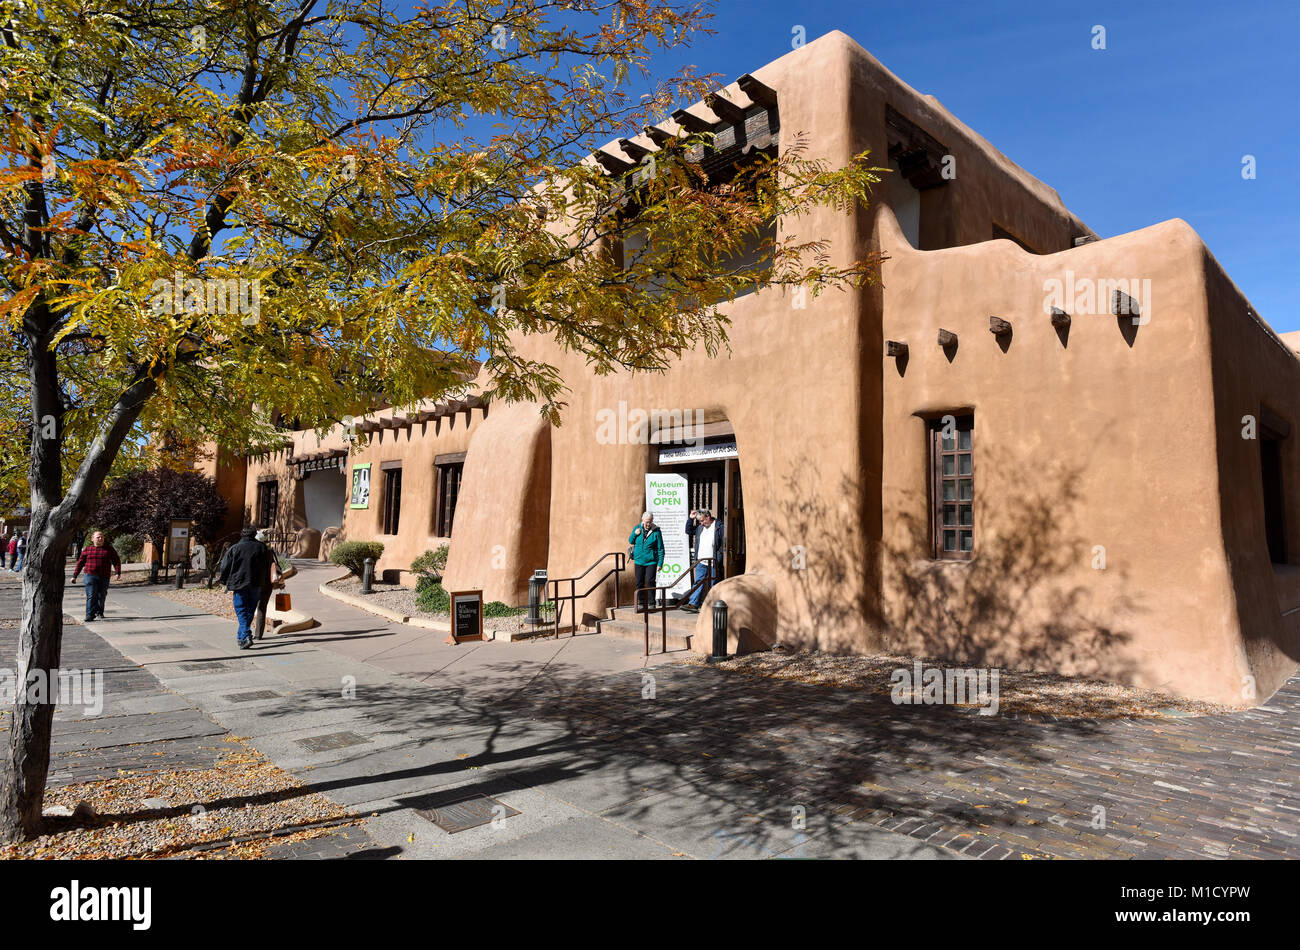 Old Town Santa Fe >> Downtown Architecture In Old Santa Fe New Mexico United States